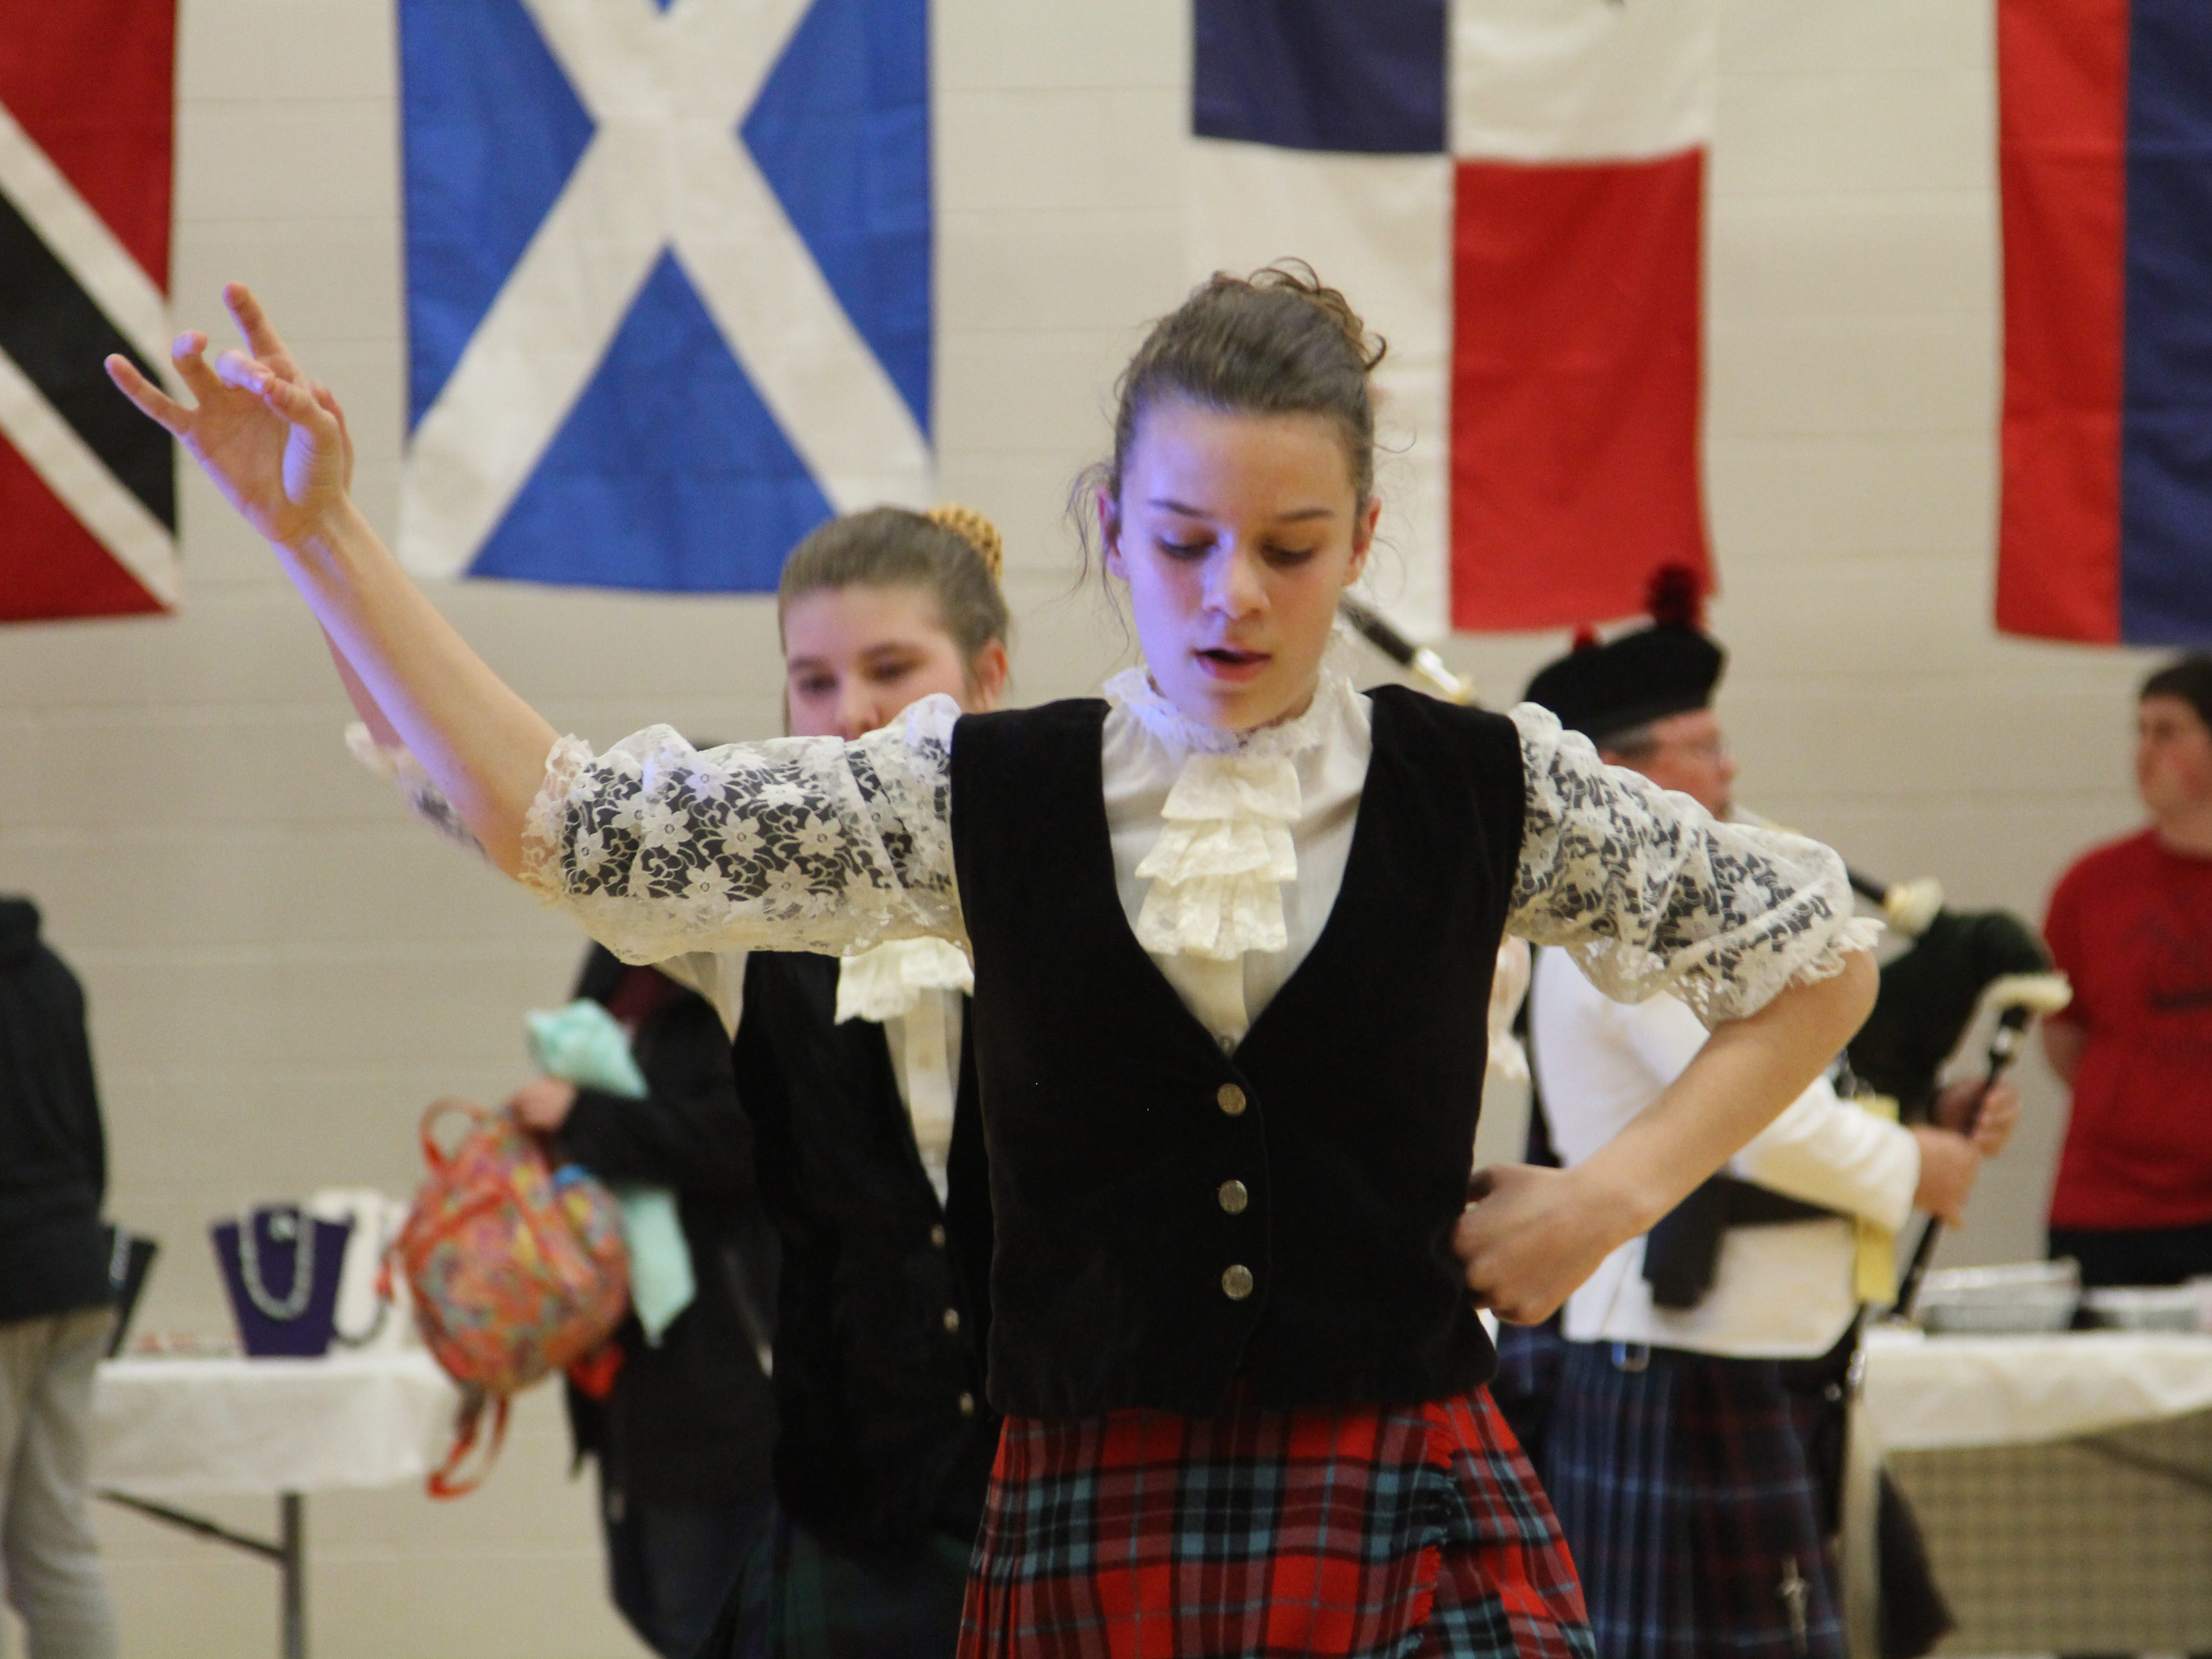 Lily Leavitt performs Thursday at The Ohio State University's Marion campus for the 12th Annual International Festival. She and Lilly Wagner performed a Scottish dance to bagpipe music.